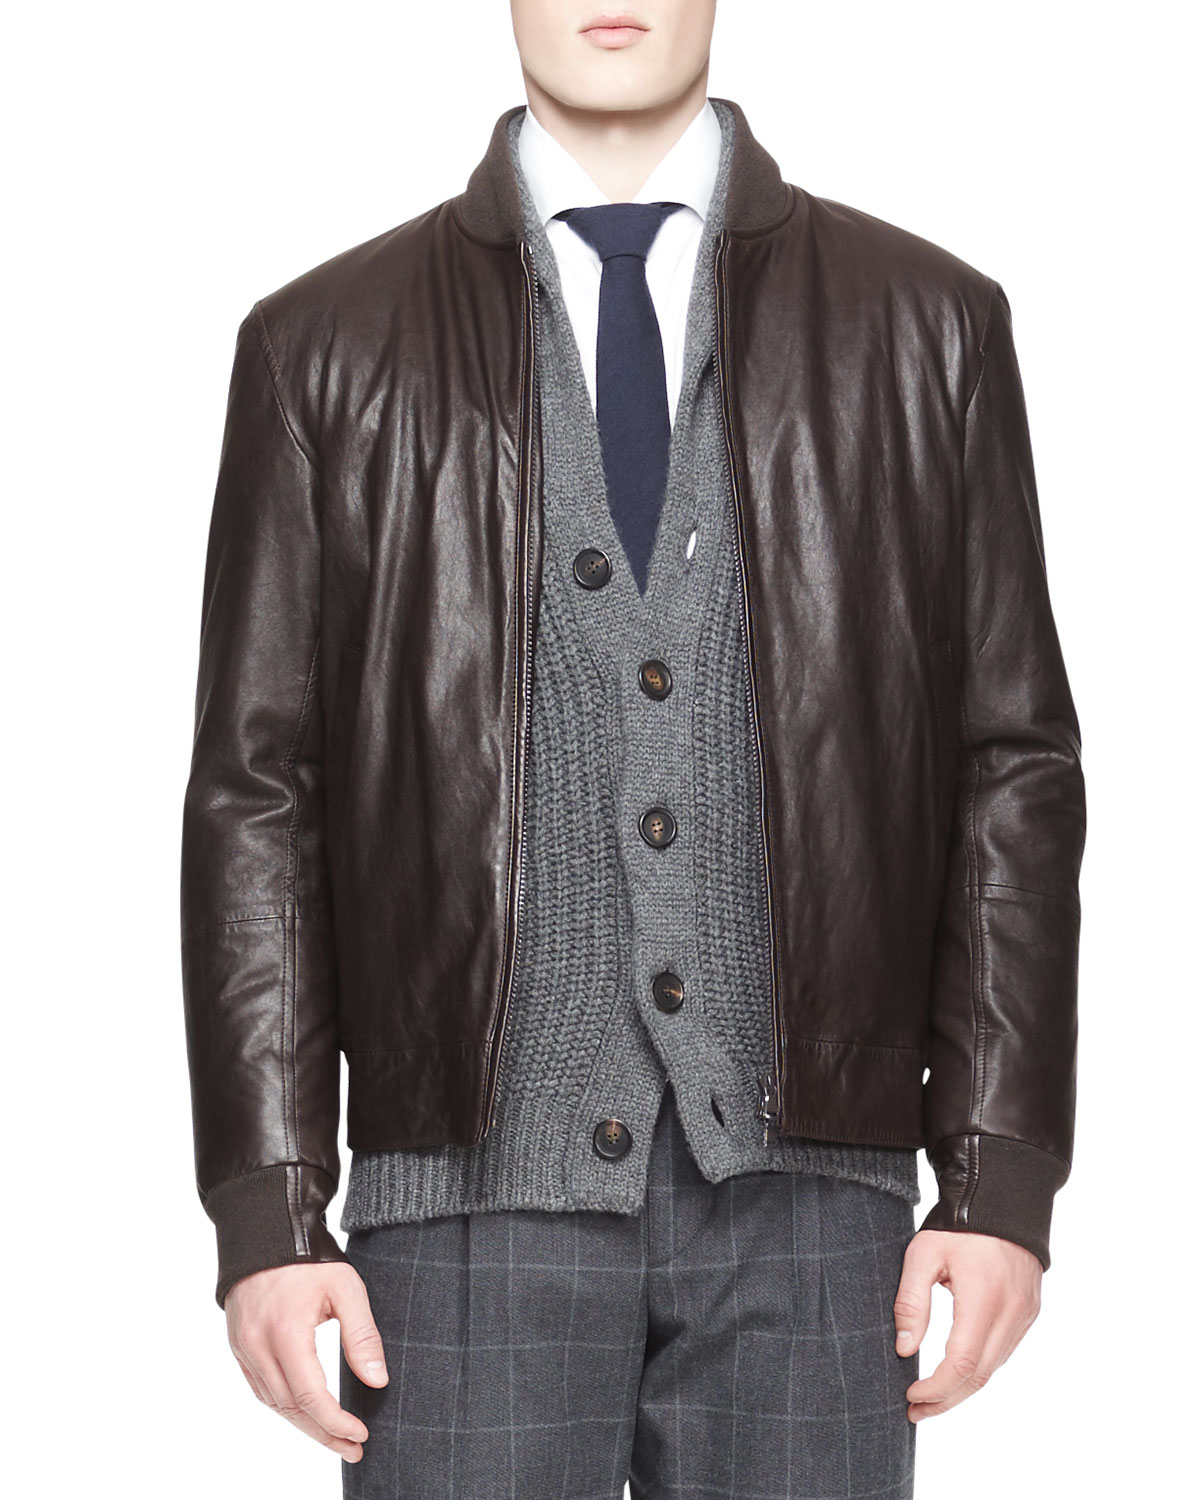 Mens Leather Thermore Bomber Jacket   Brunello Cucinelli   Brown (M/50)